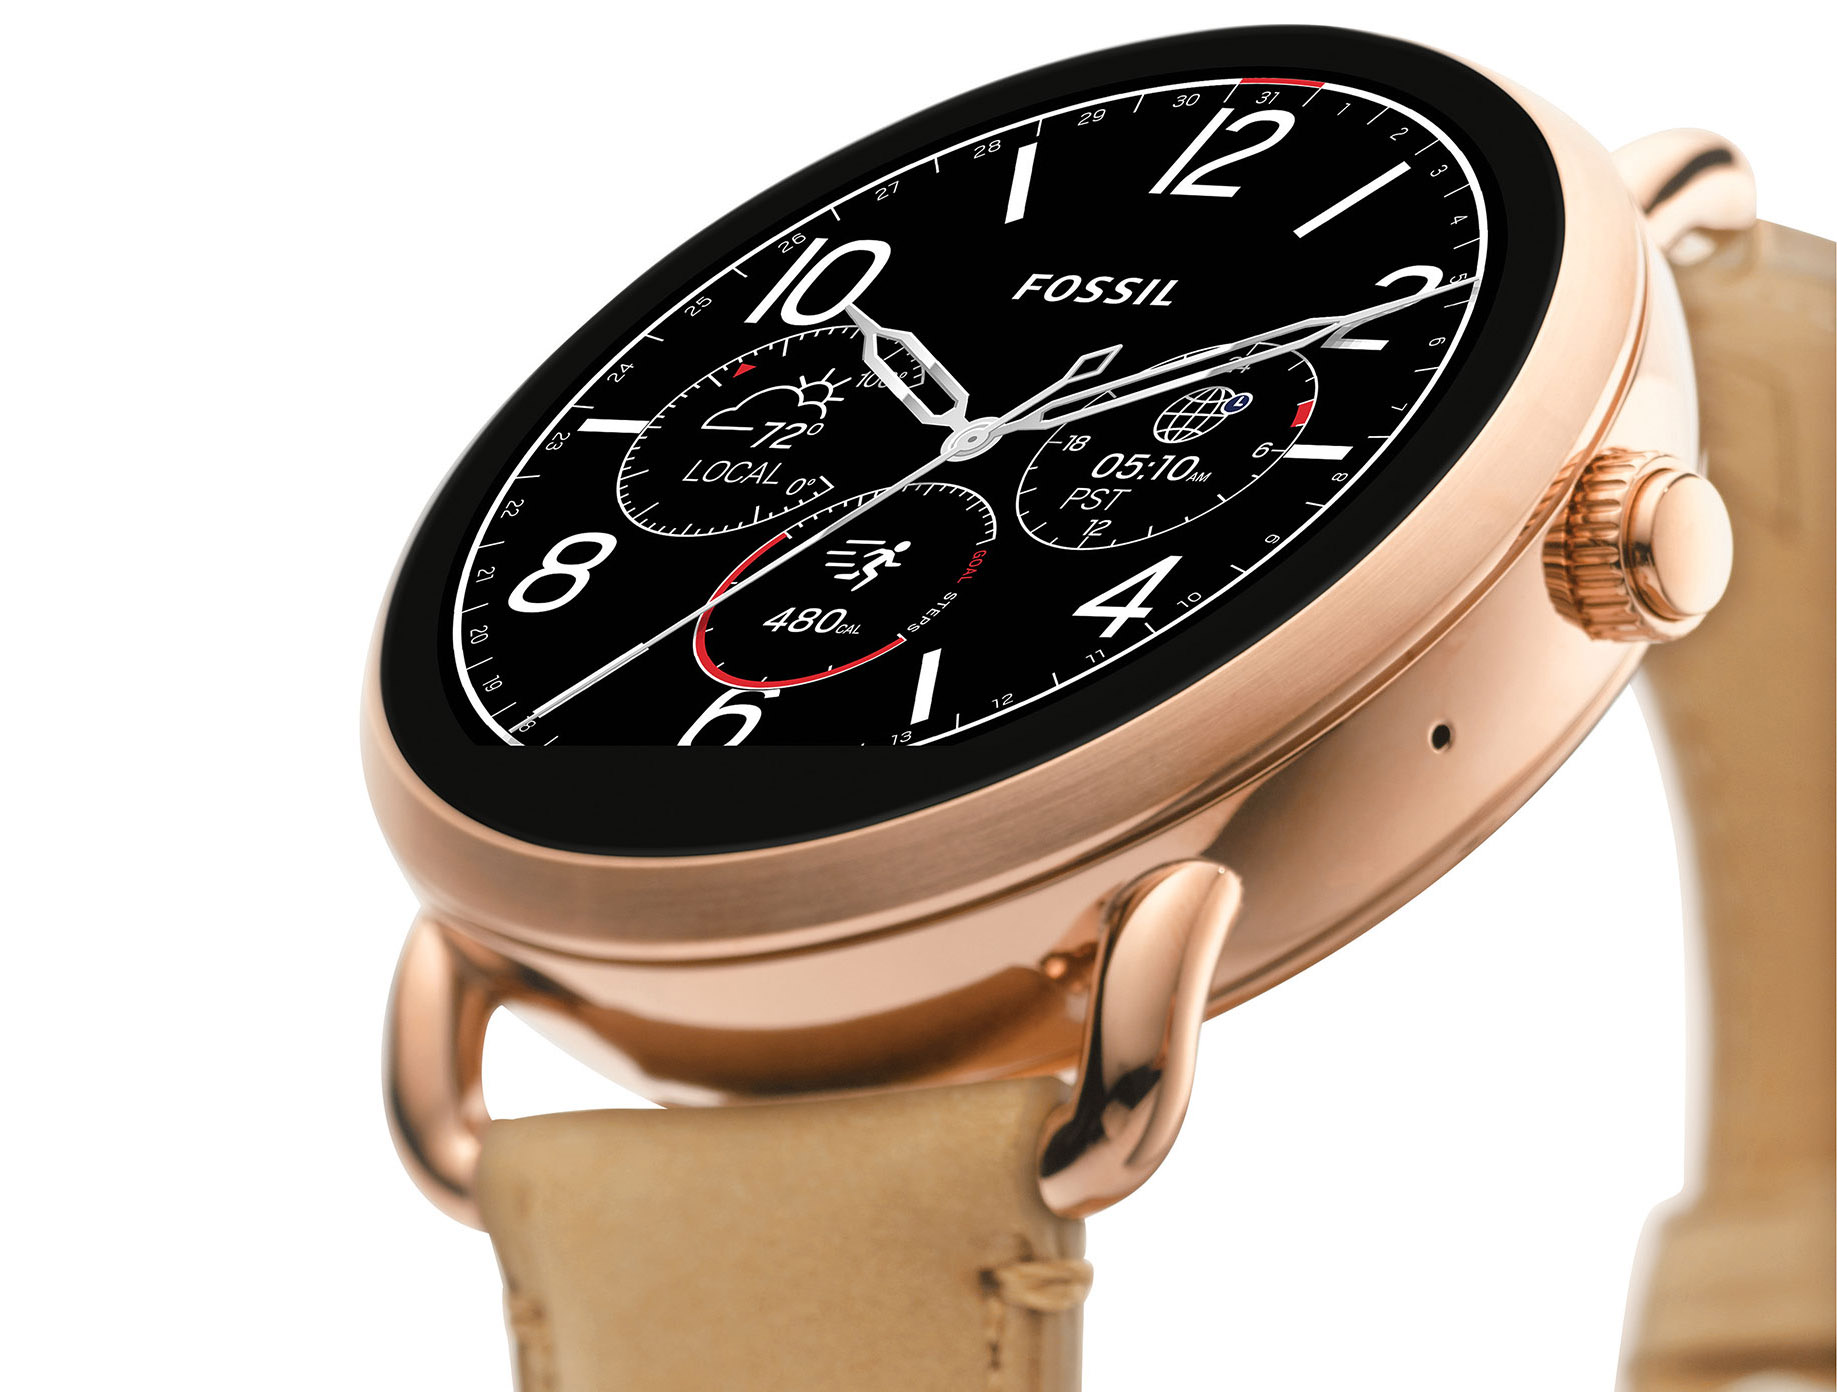 43df8f53d5acd Fashion meets smartwatch from Fossil and Michael Kors   Best Buy Blog